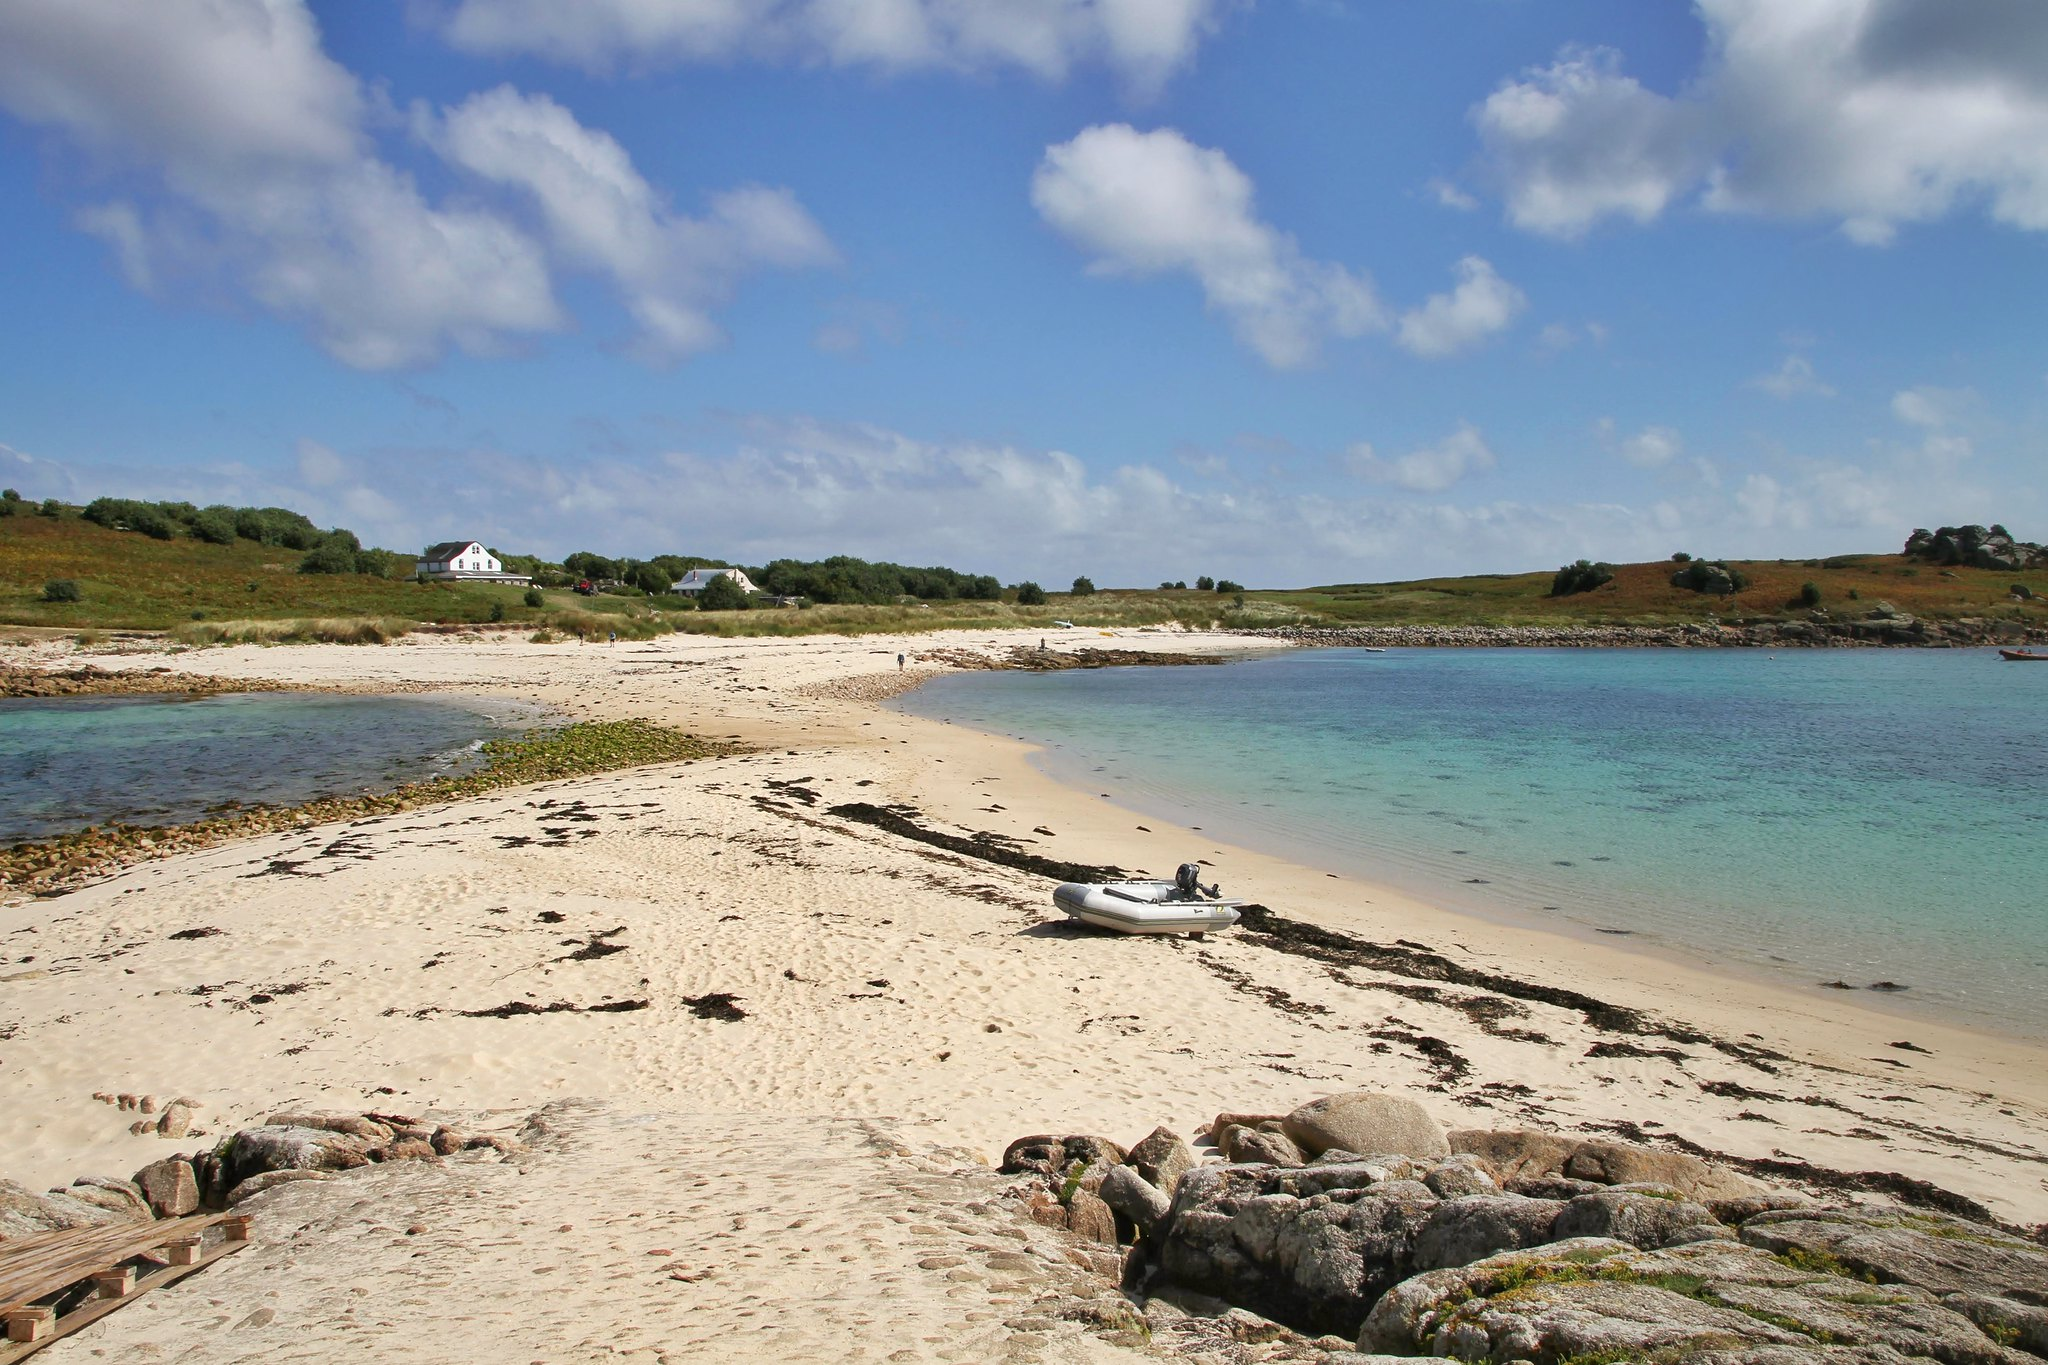 GB5SM – Isles of Scilly, EU-011